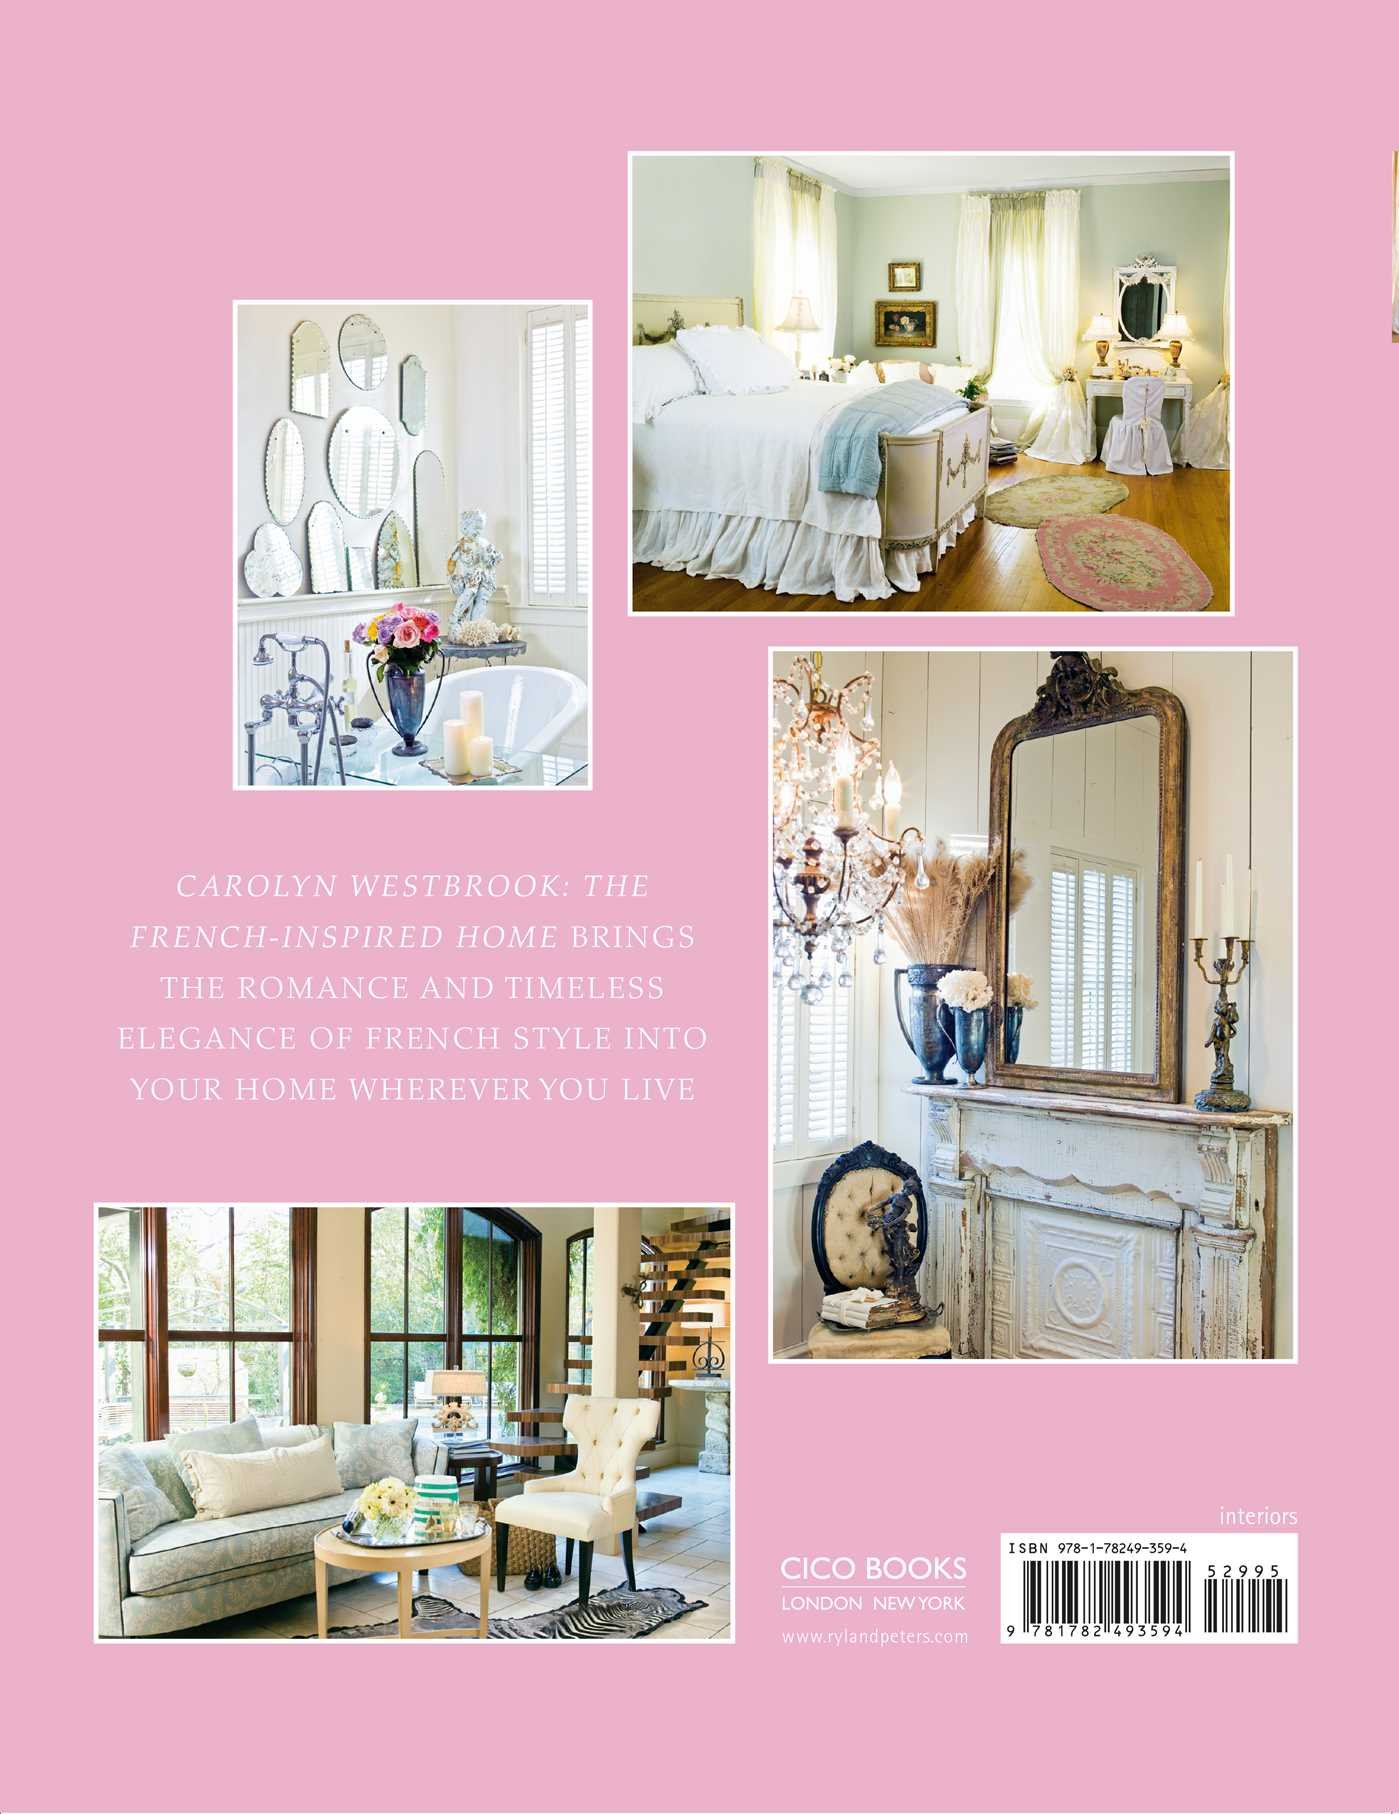 the french inspired home carolyn westbrook 9781782493594 amazon the french inspired home carolyn westbrook 9781782493594 amazon com books